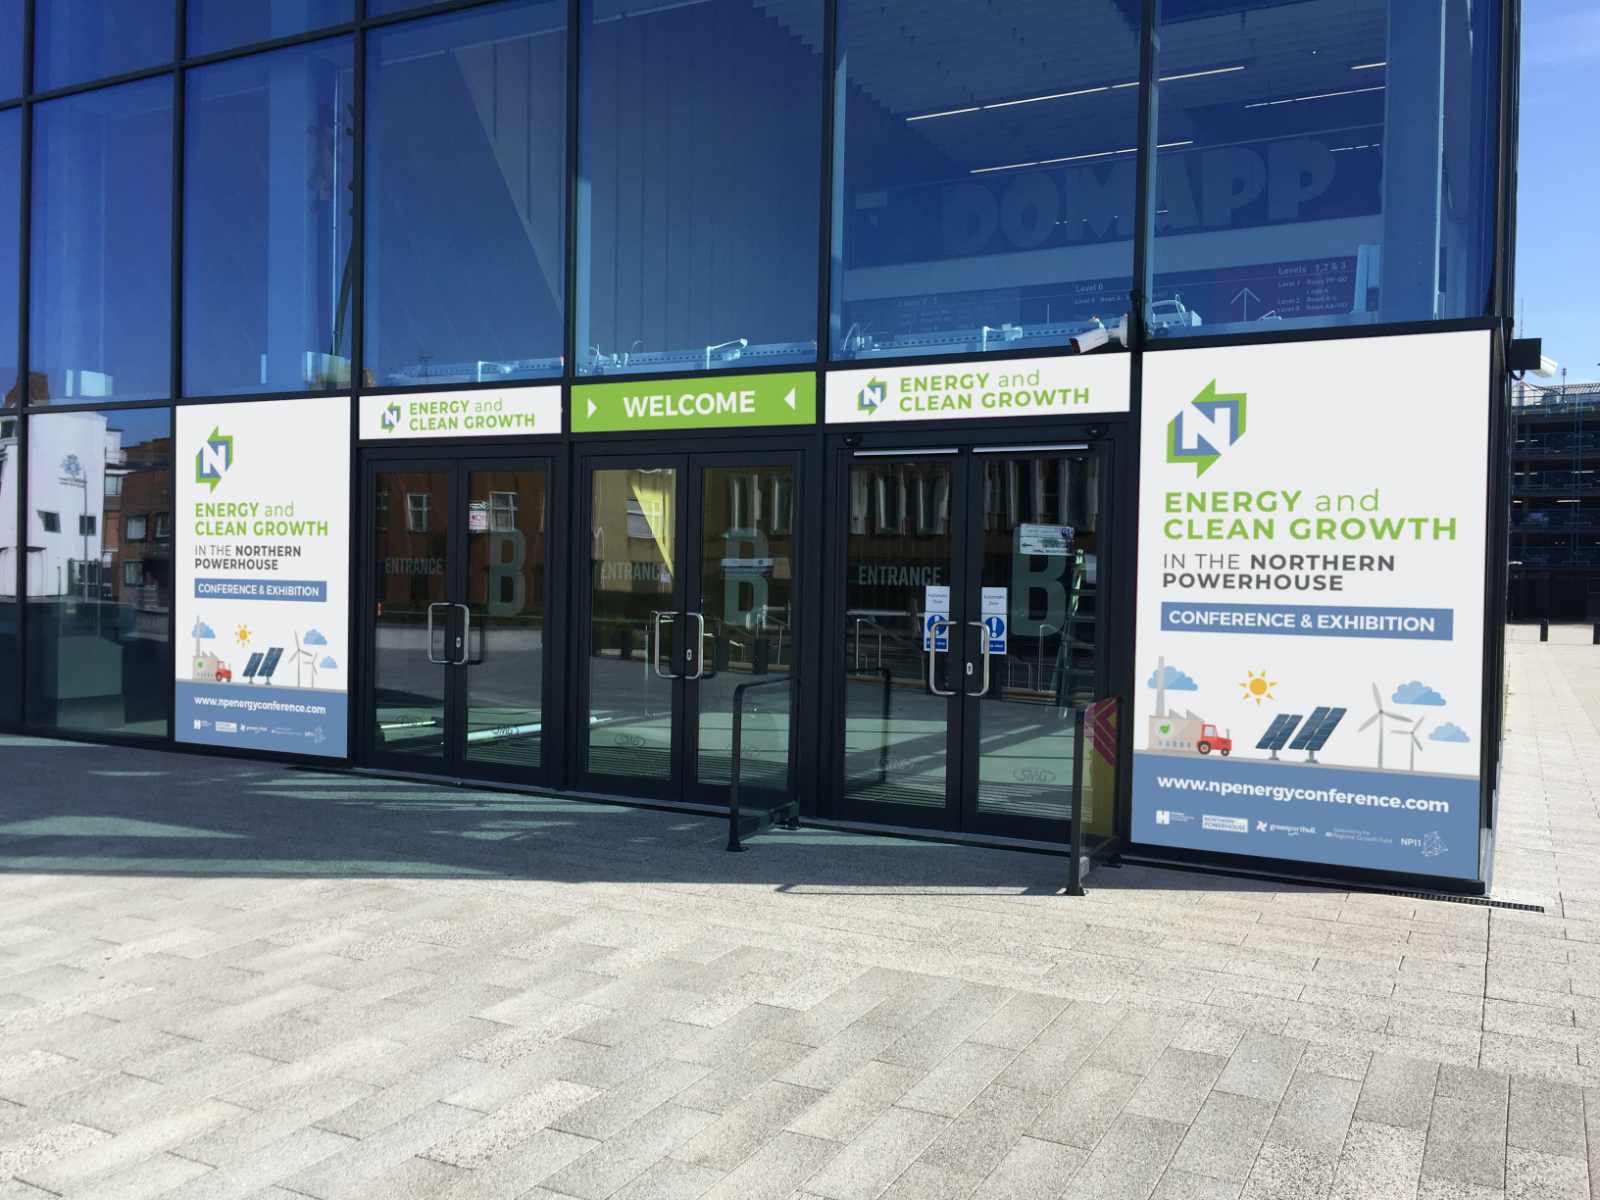 Northern Powerhouse Conference Entrance door